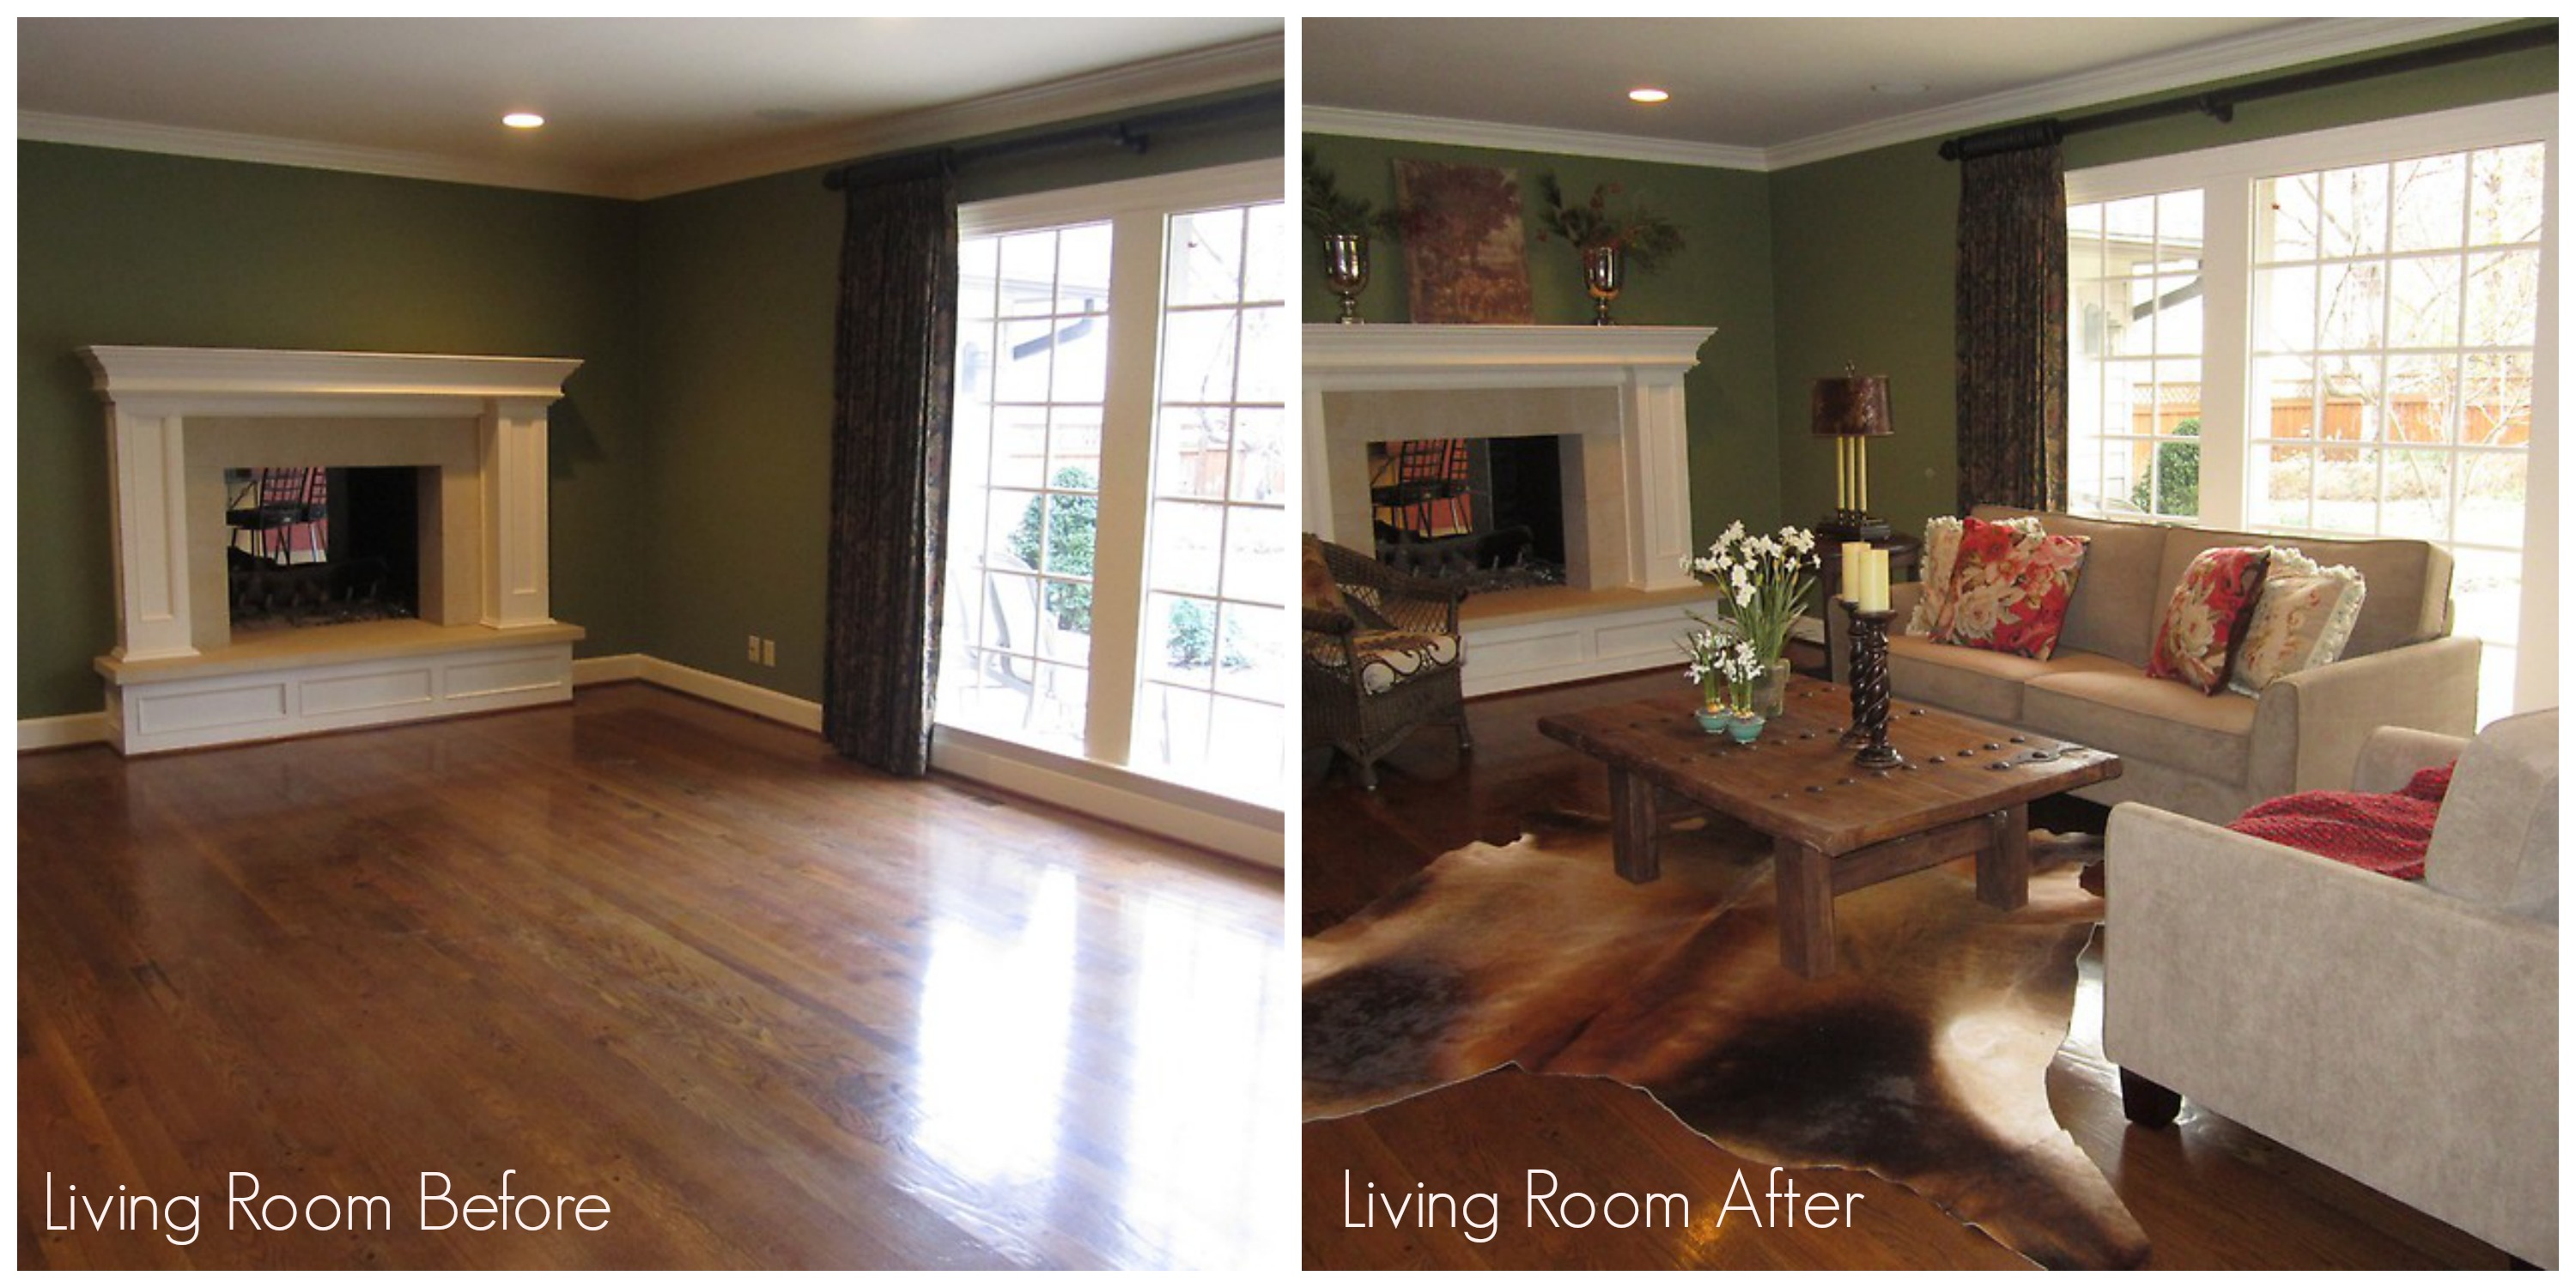 living room before and after staging. An Insider s Guide To Hiring A Home Stager   Porch Advice